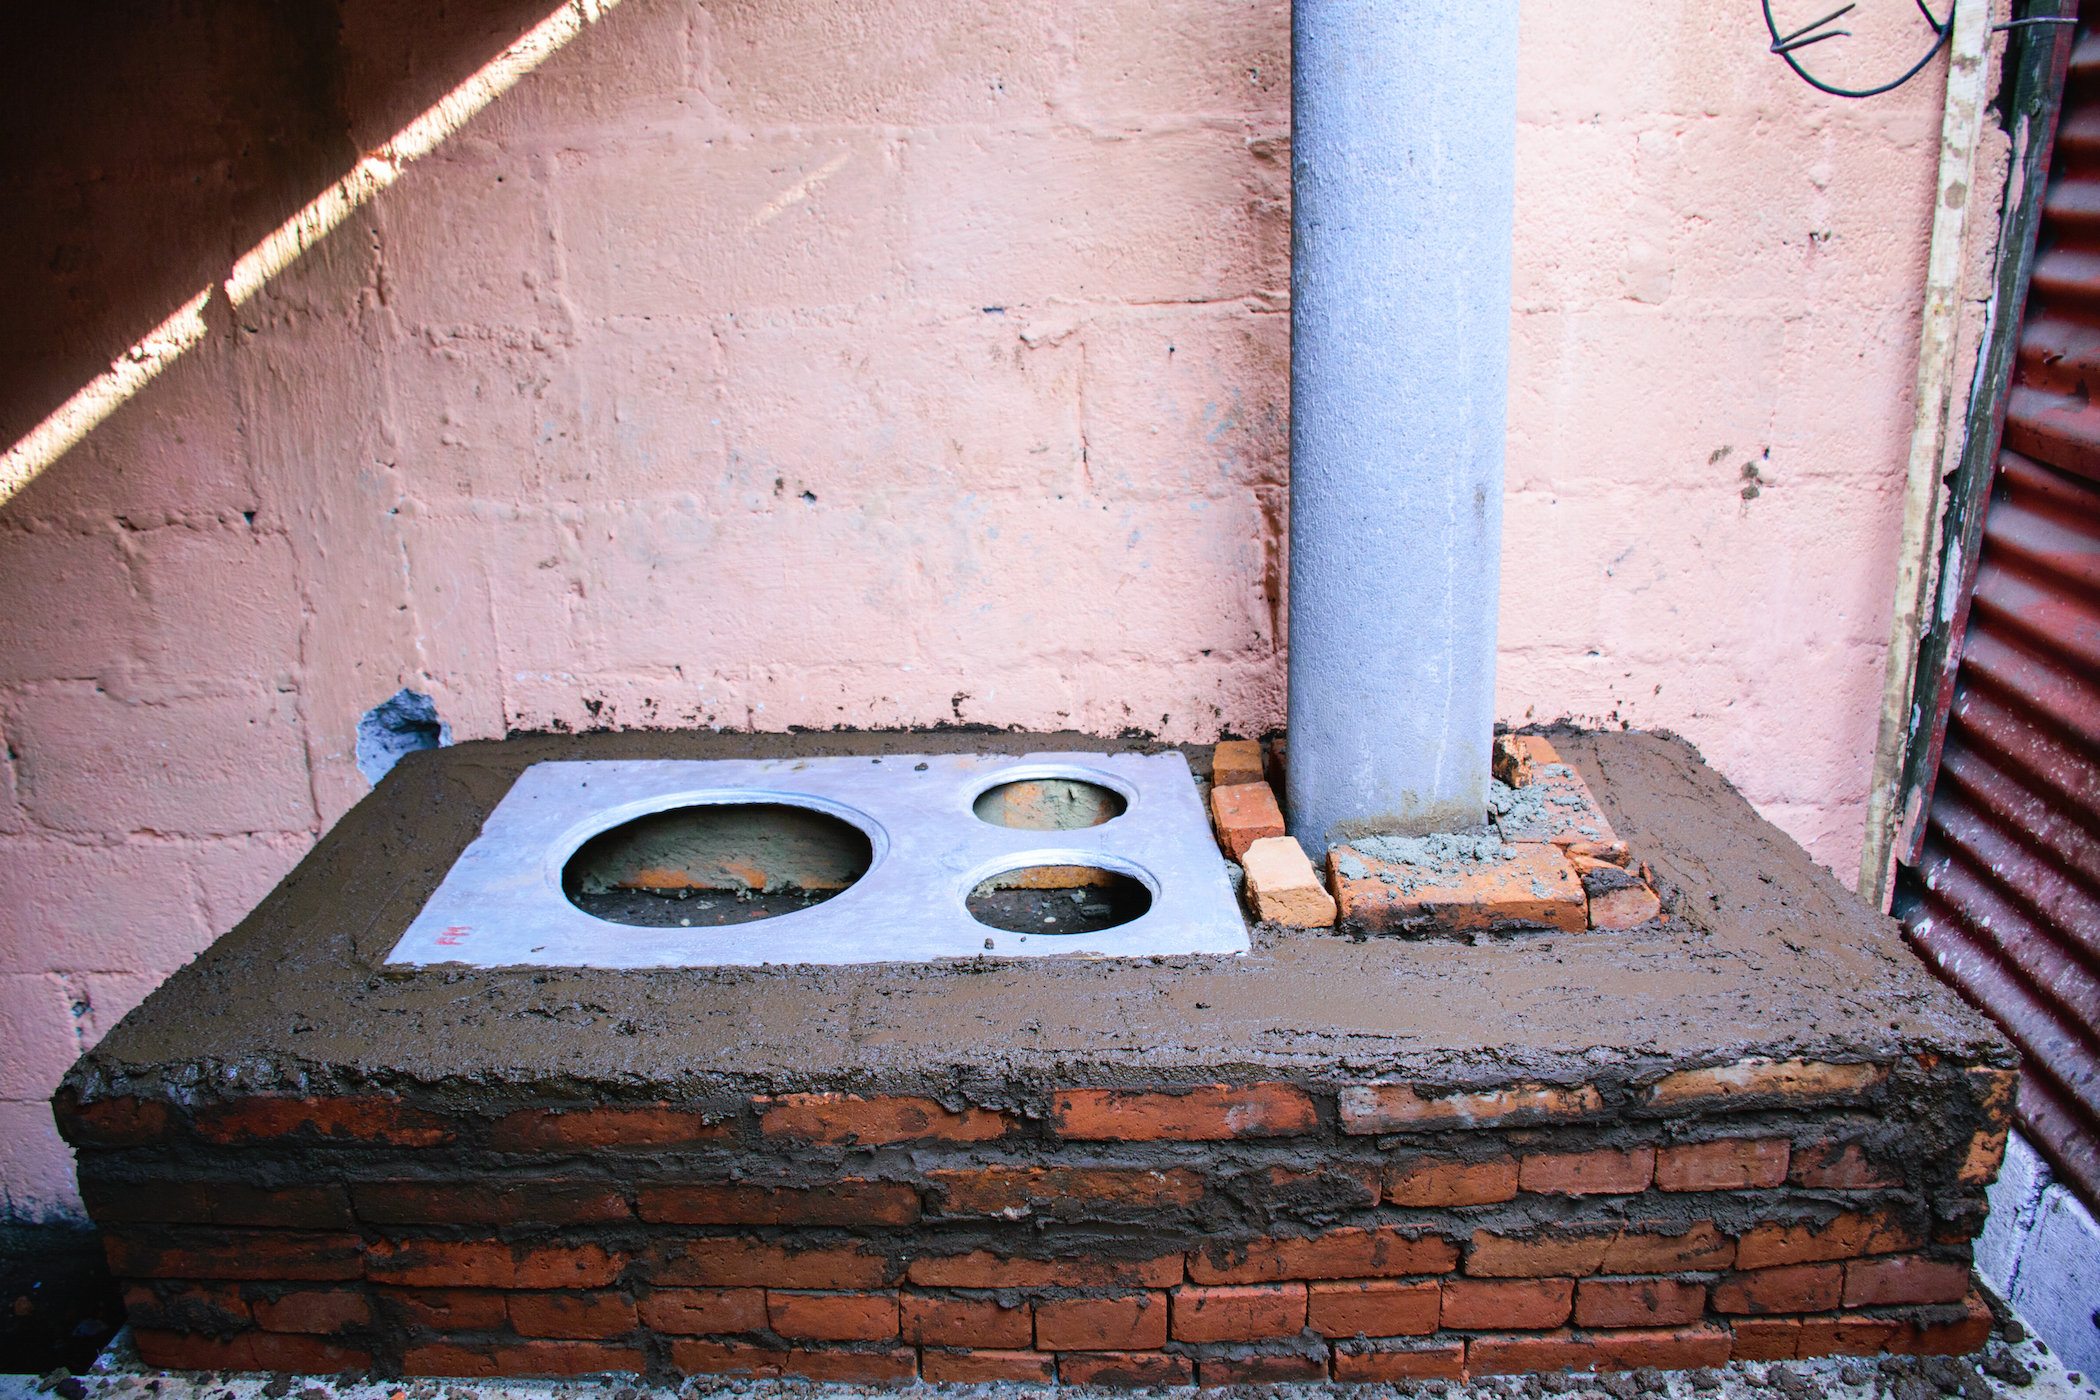 20150311-Stove Project5.jpg